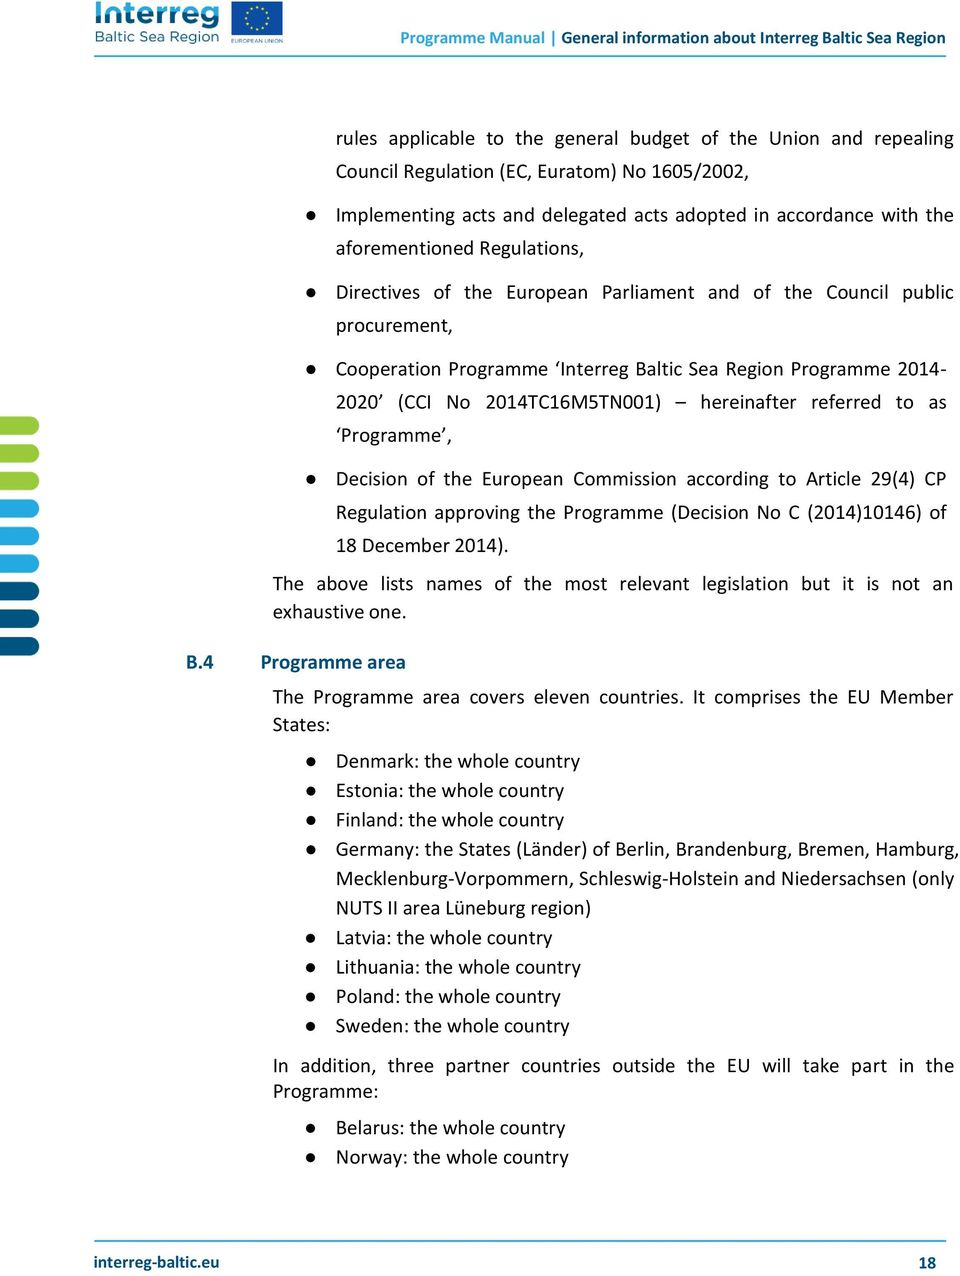 Sea Region Programme 2014-2020 (CCI No 2014TC16M5TN001) hereinafter referred to as Programme, Decision of the European Commission according to Article 29(4) CP Regulation approving the Programme